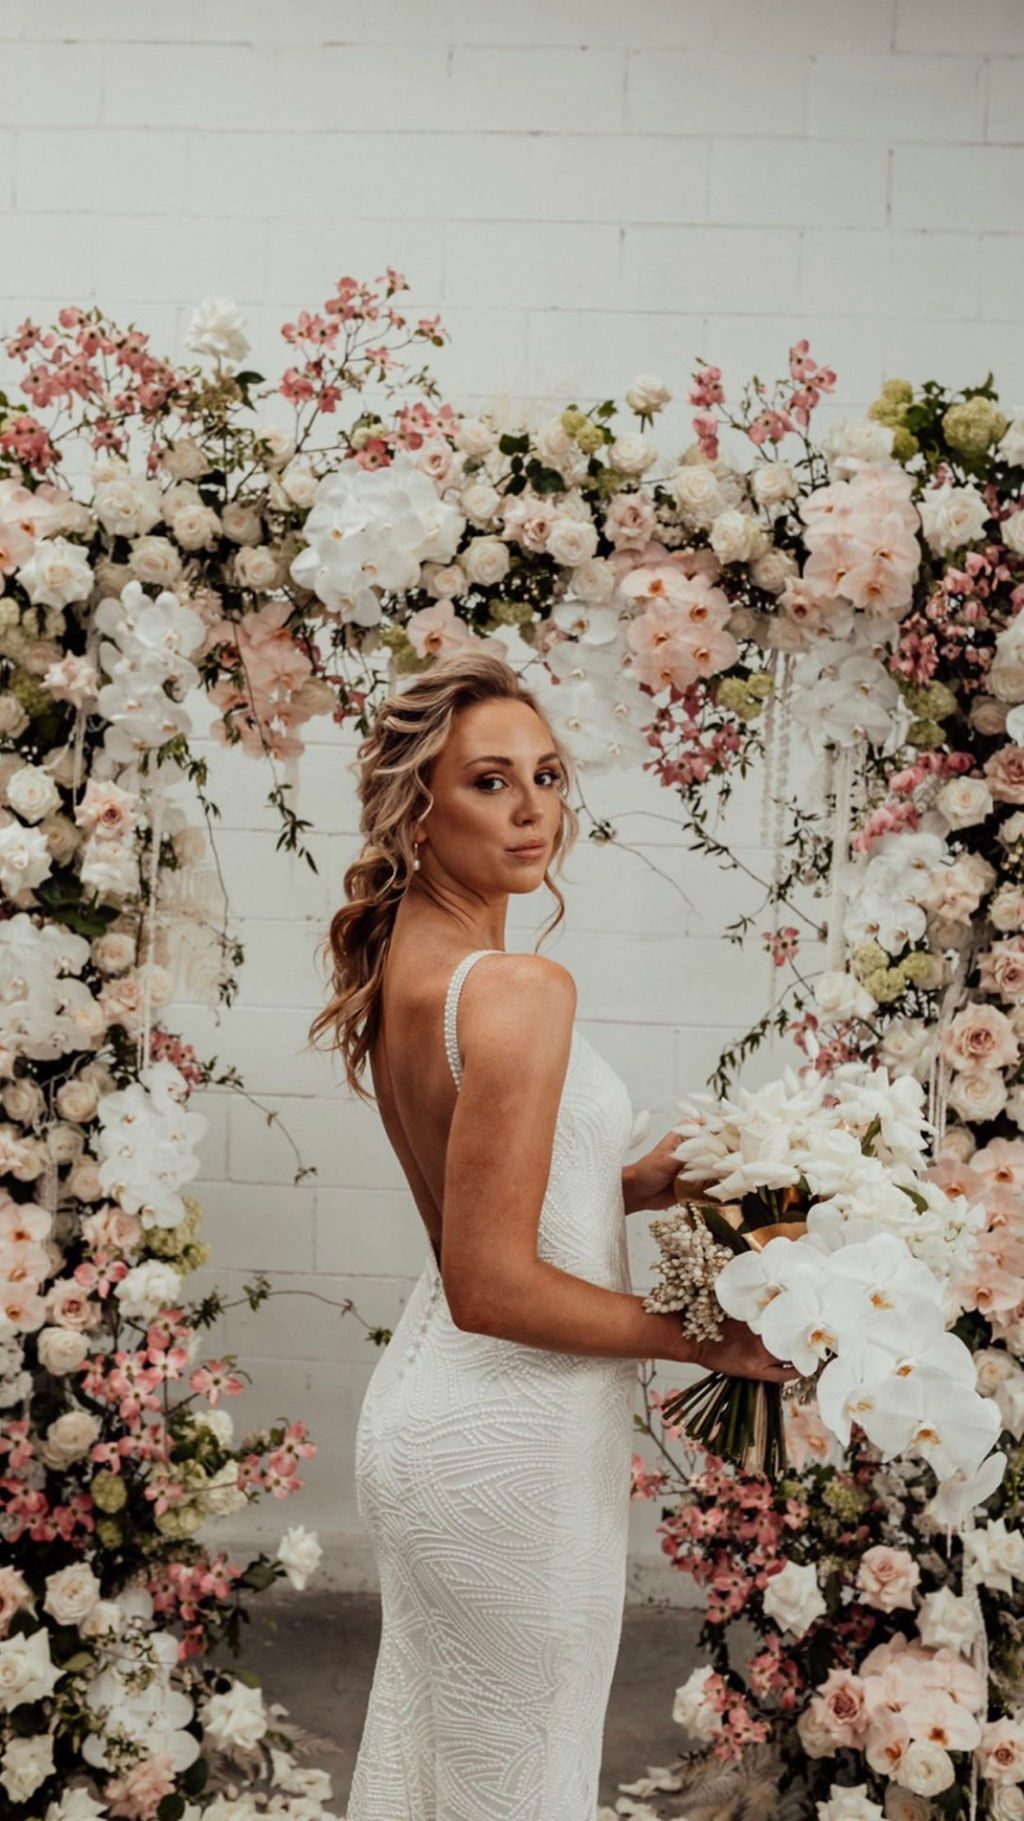 LILY GRACE BRIDAL | IN THE NAME OF LOVE EDITORIAL THE ENTRANCE NSW